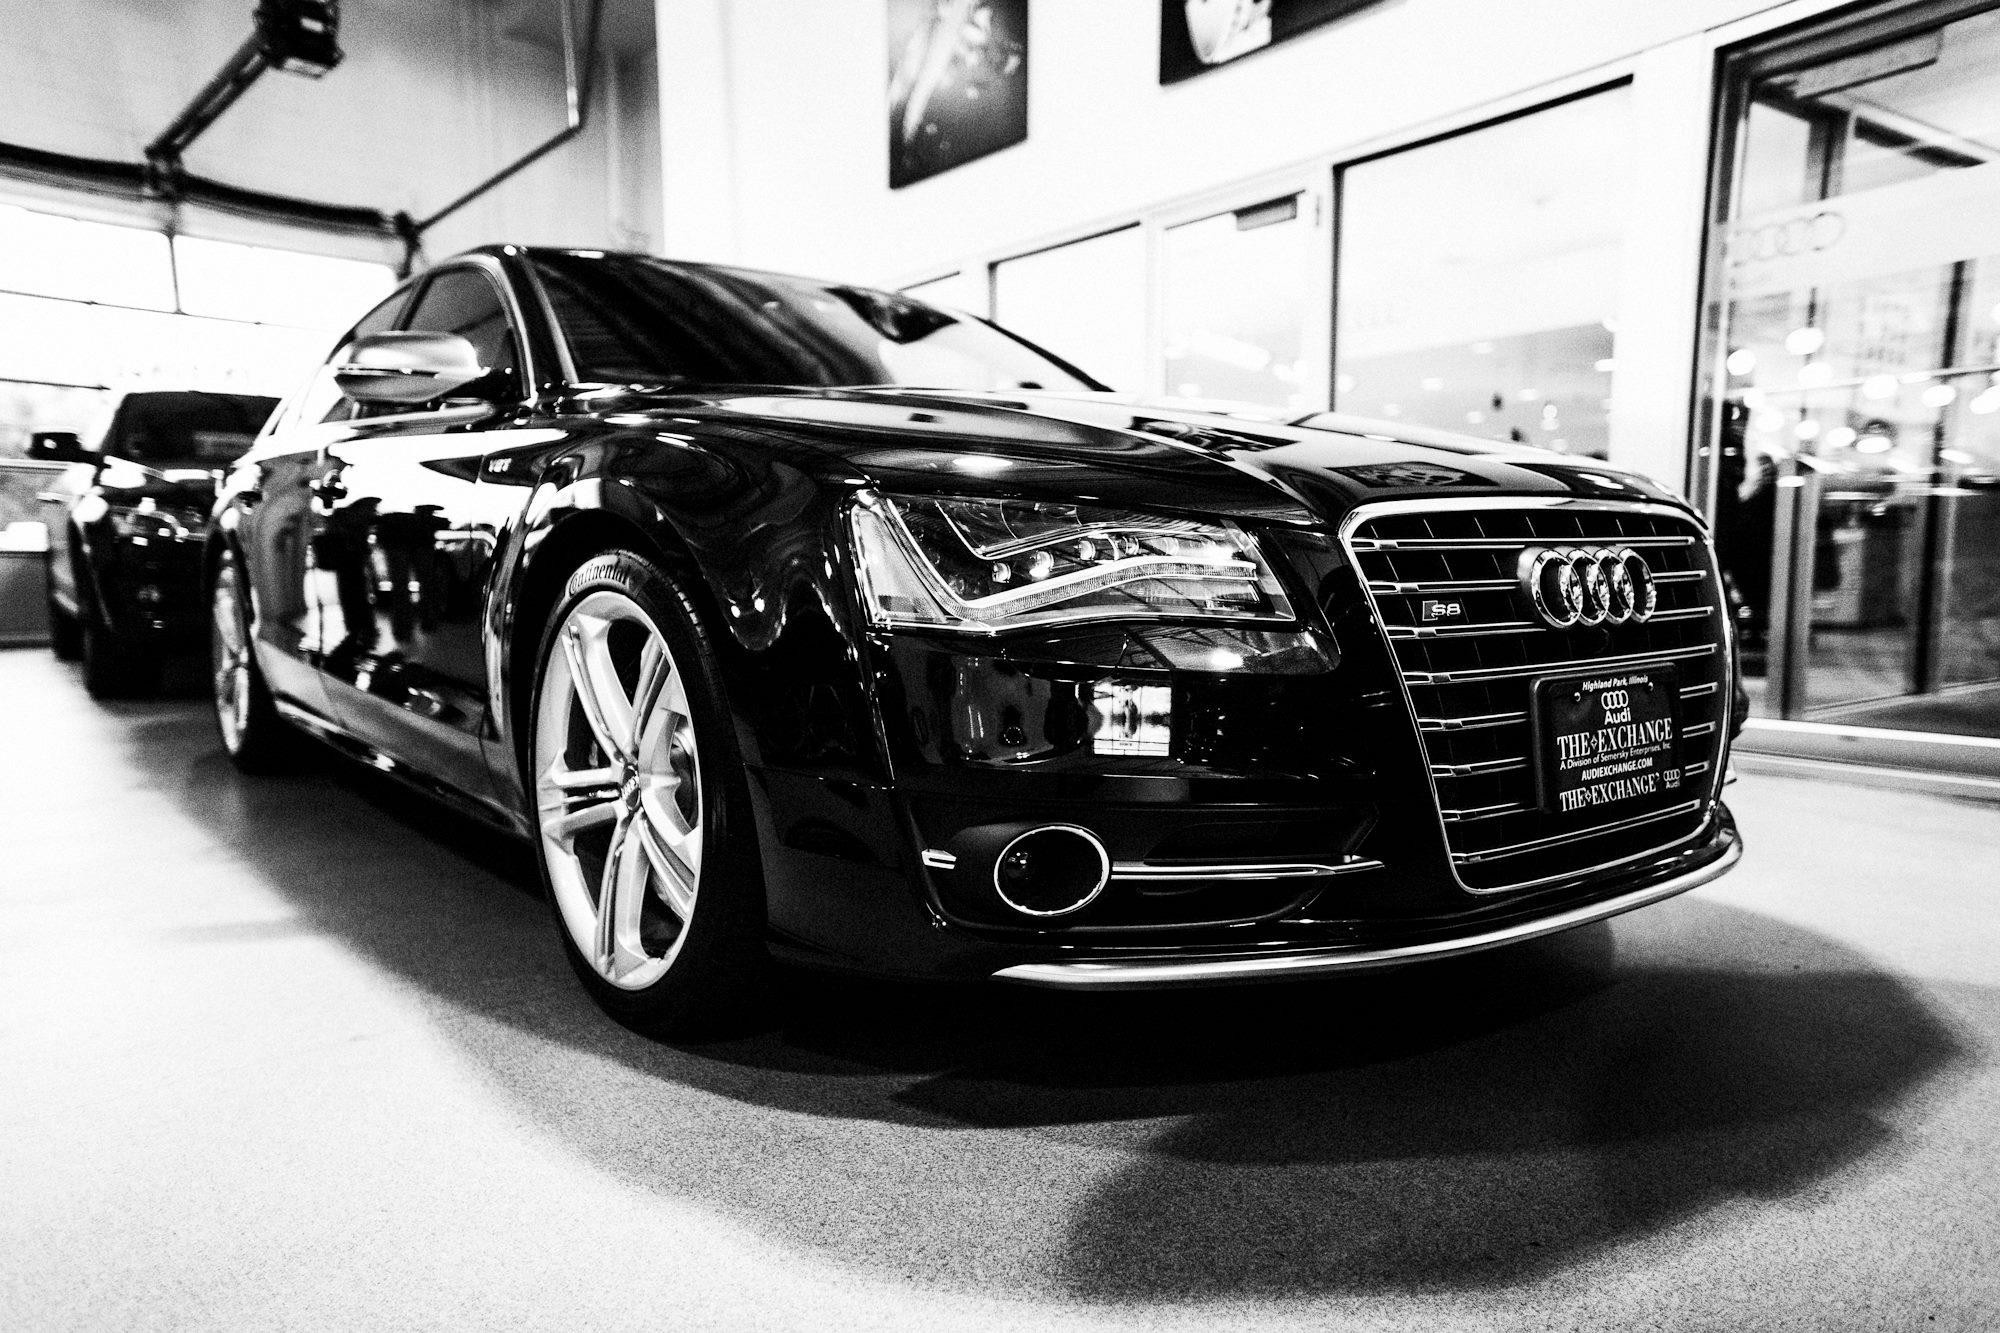 Best Car Wax For Black Cars >> Black and white cars audi a6 wallpaper | AllWallpaper.in